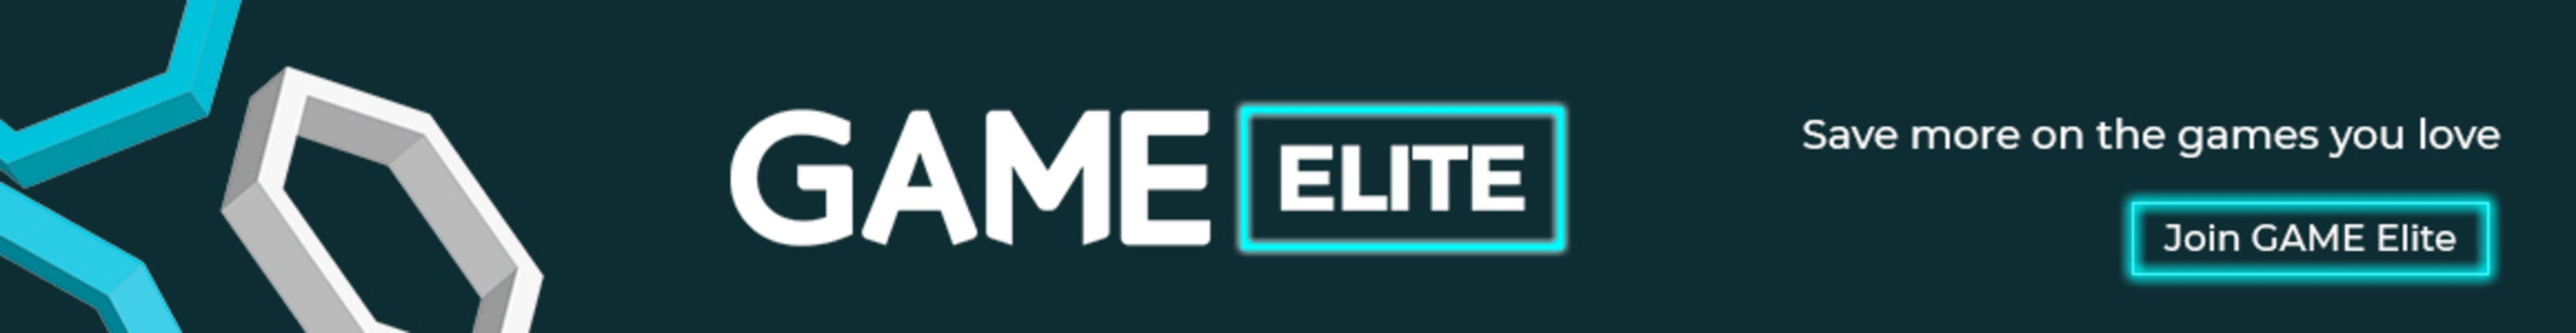 GAME Elite - Subscribe Today at GAME.co.uk